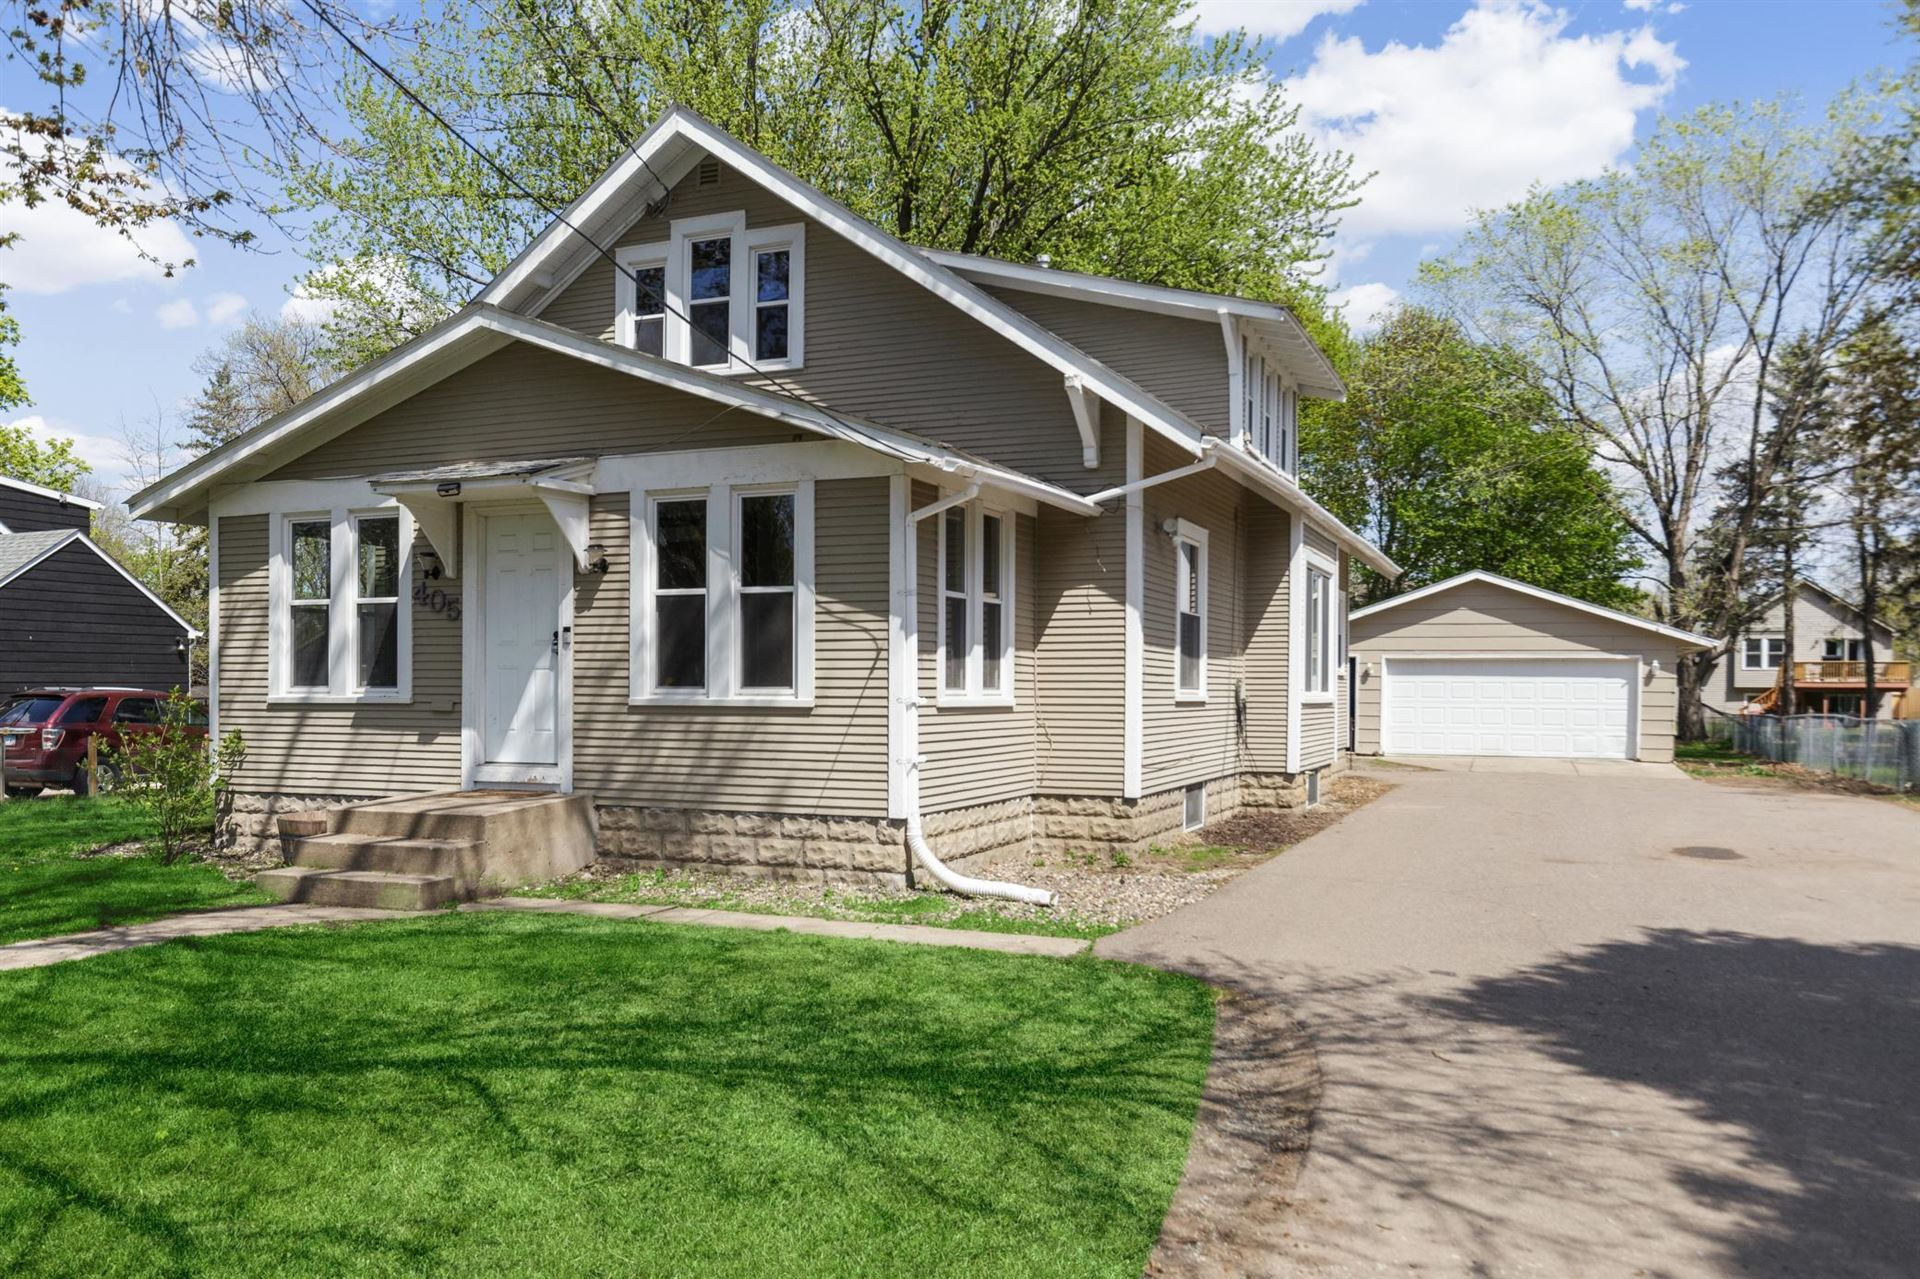 Photo of 405 8th Street, Farmington, MN 55024 (MLS # 5754181)